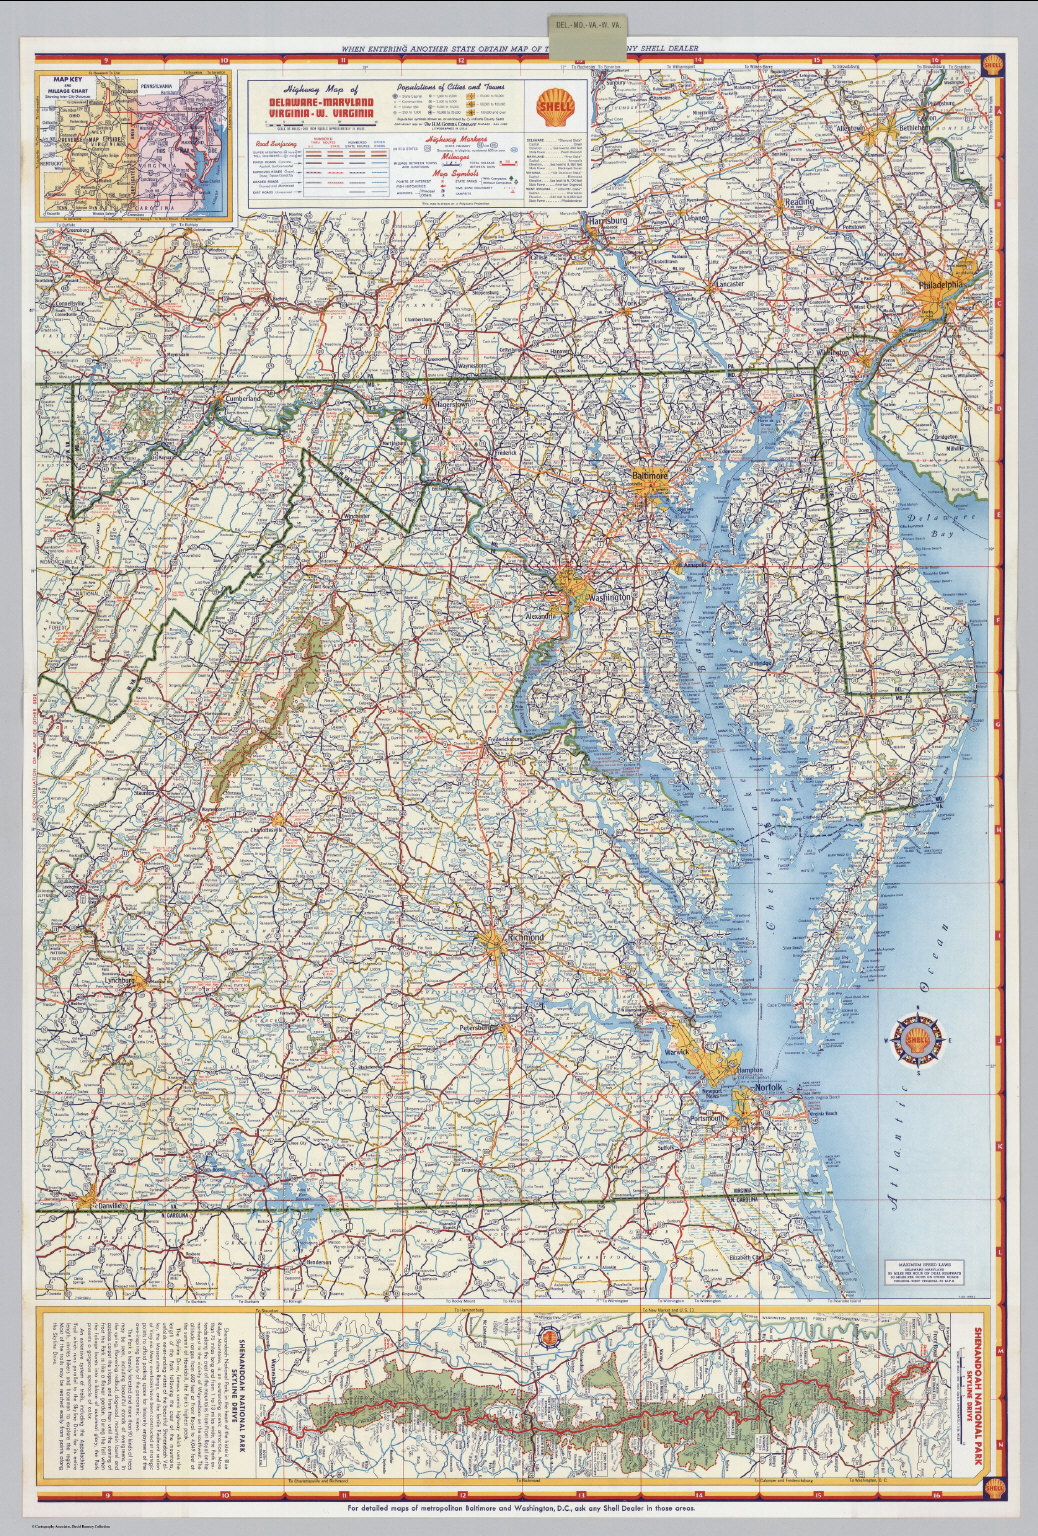 Shell Highway Map Of Delaware Maryland Virginia W Virginia - W virginia map